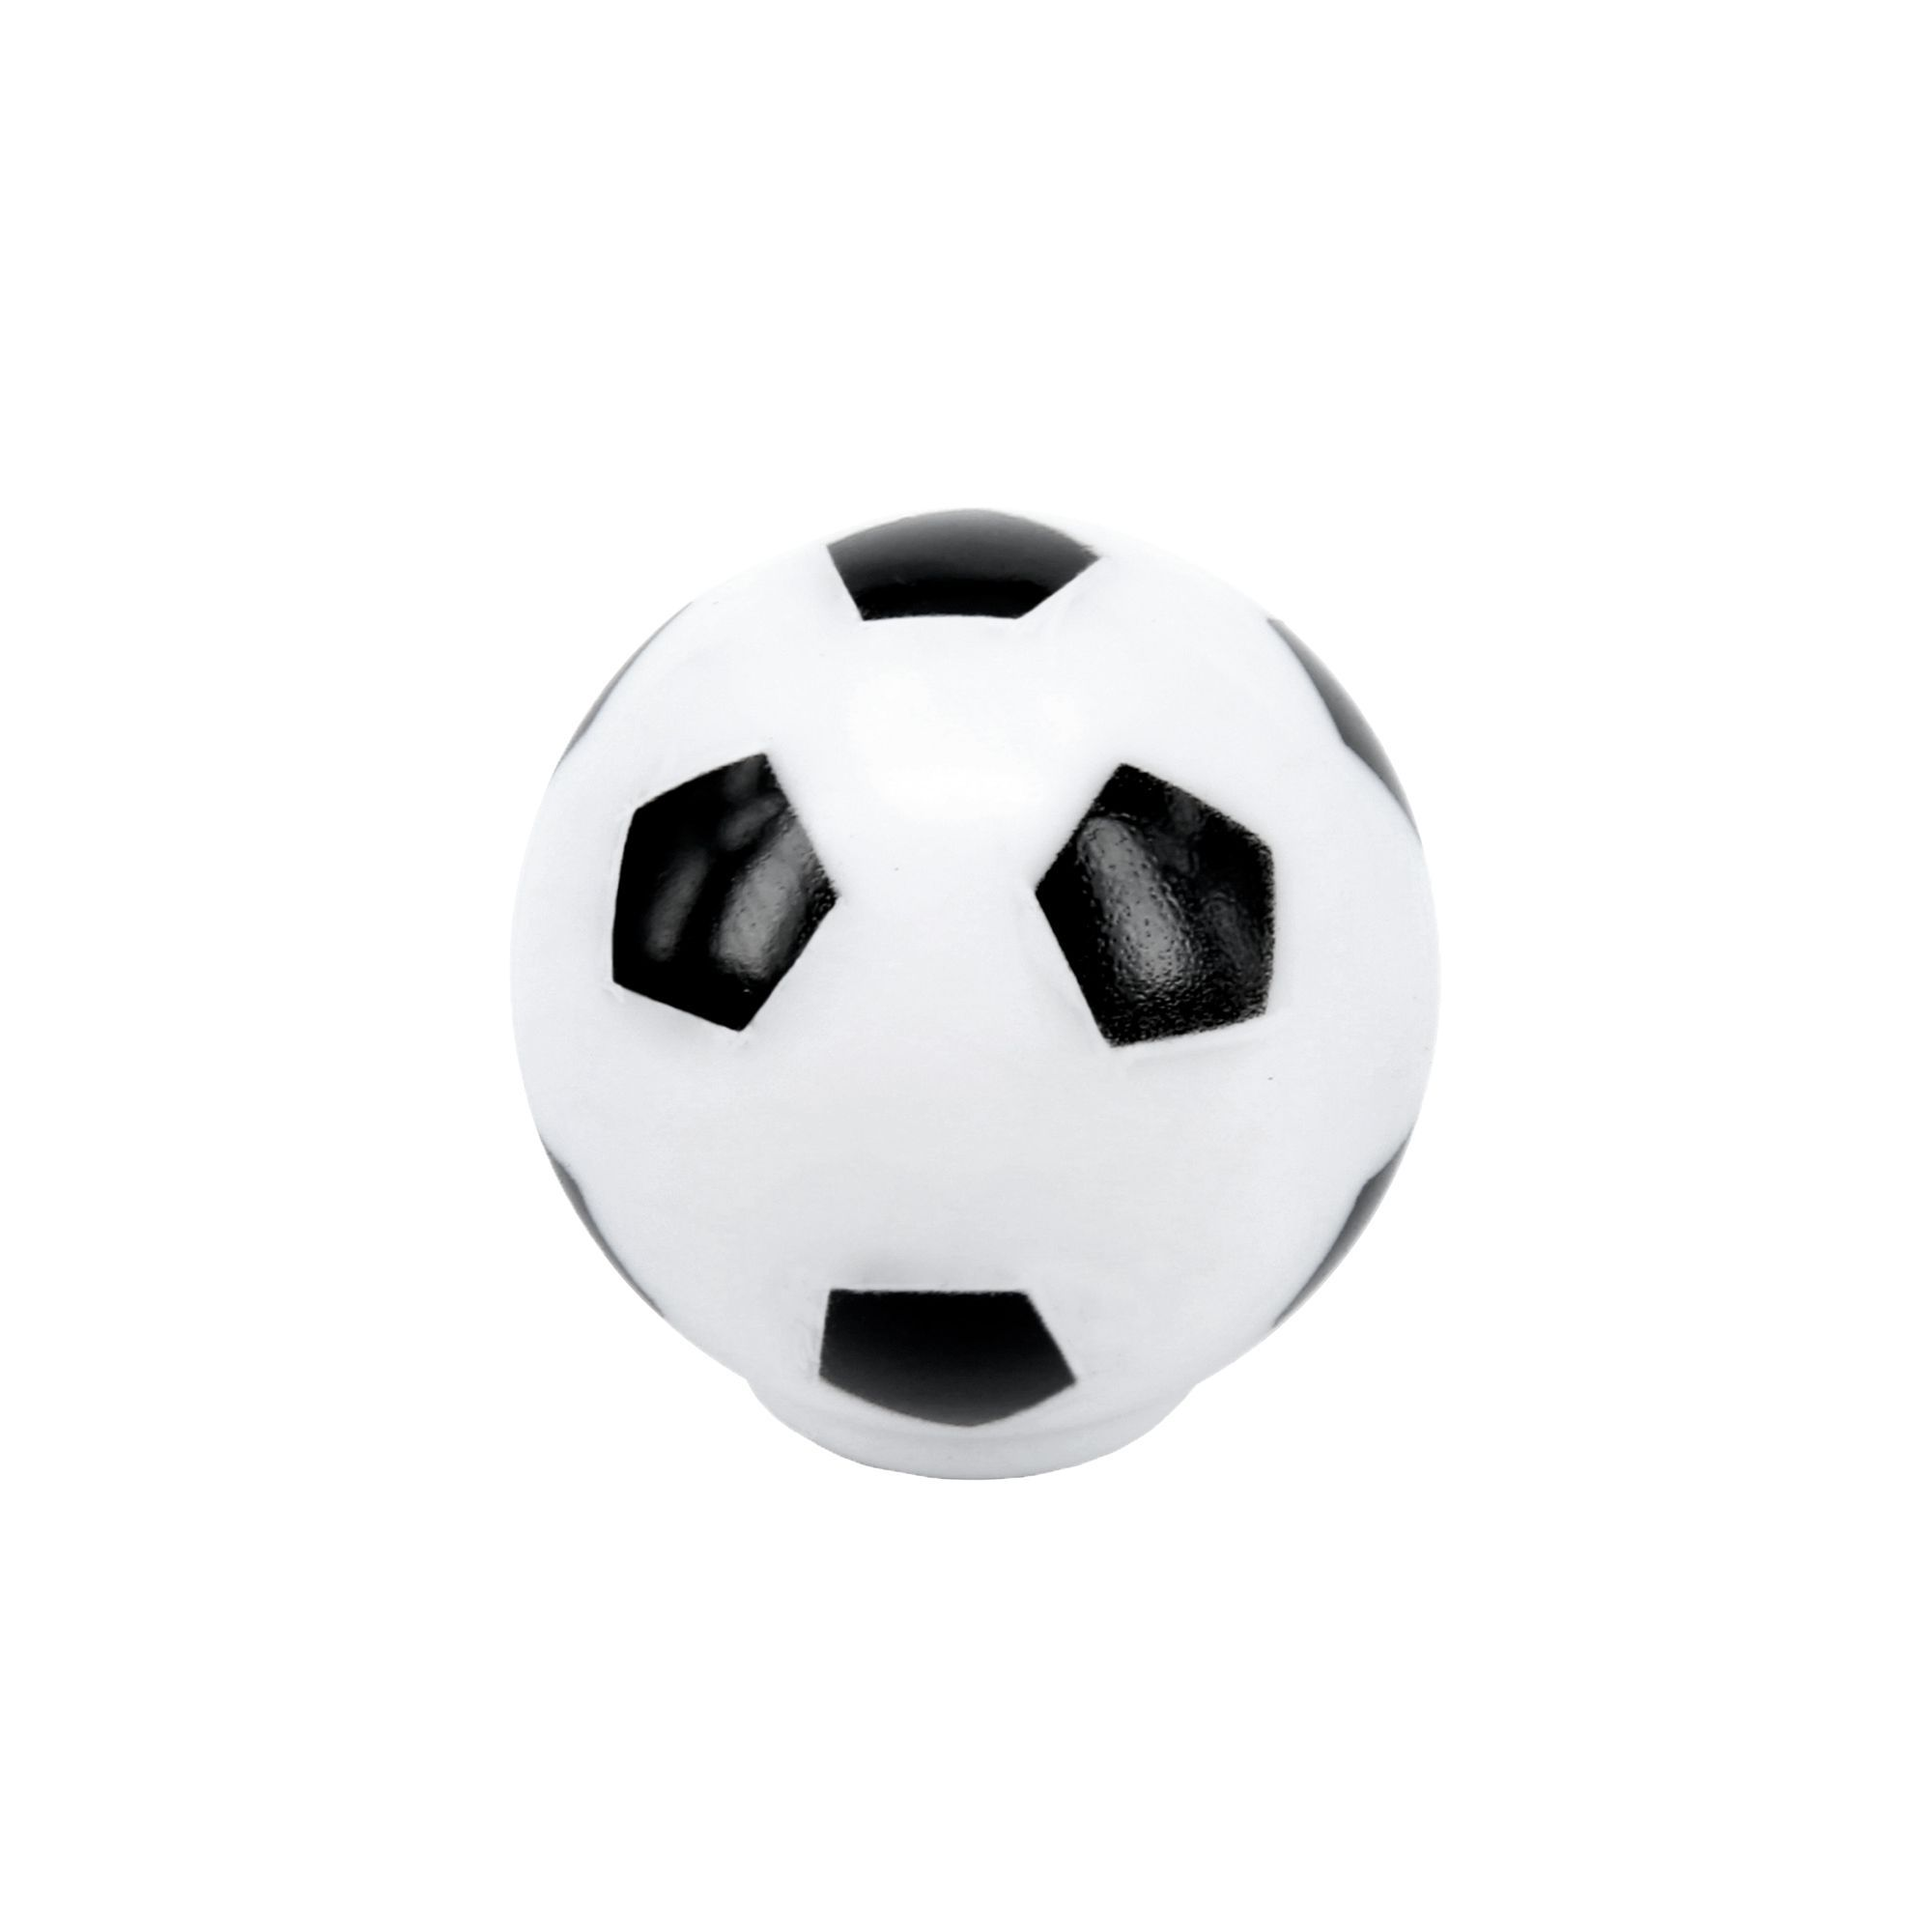 B&Q Colours Football Internal Knob Furniture Knob (D)33 mm, Pack of ...